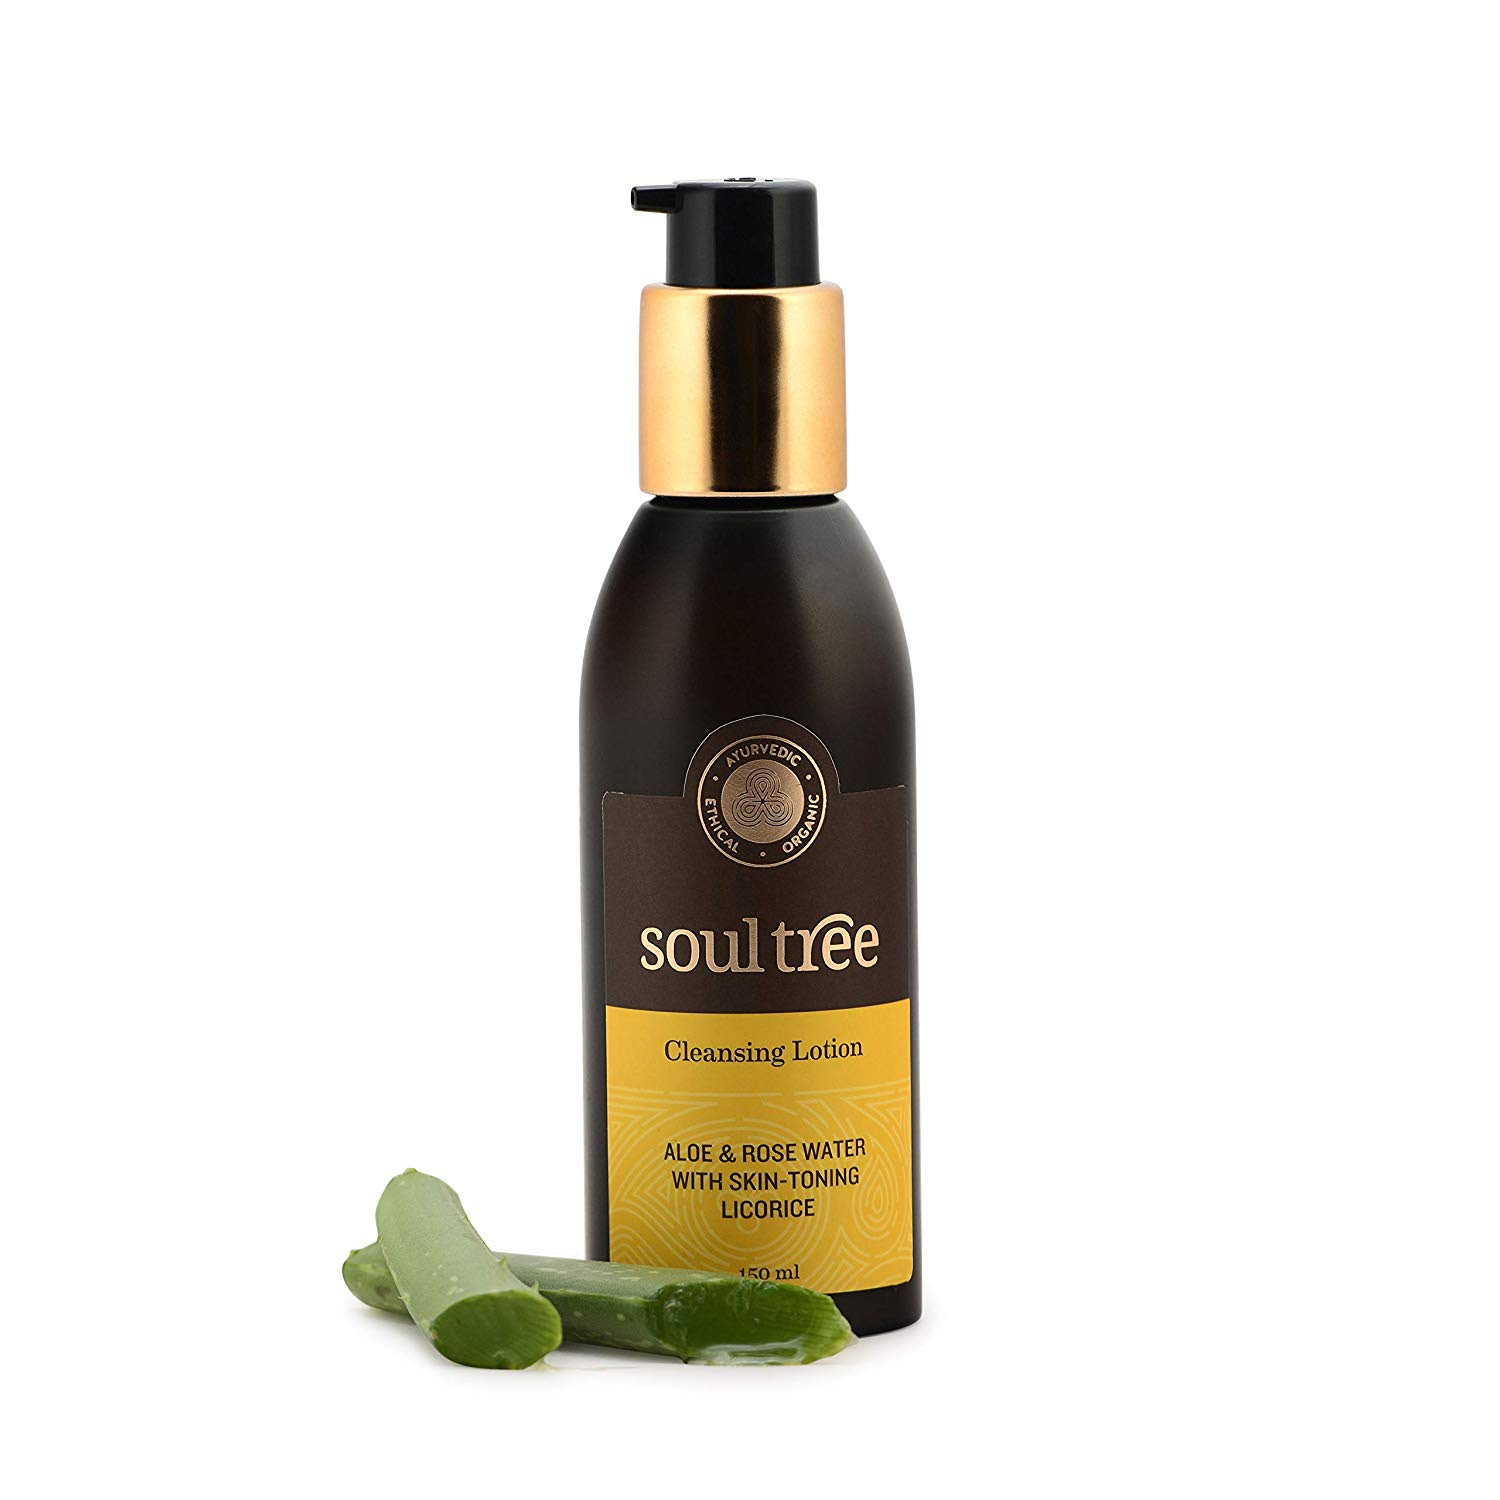 SoulTree Cleansing Lotion Aloe & Rose Water With Skin Toning Licorice